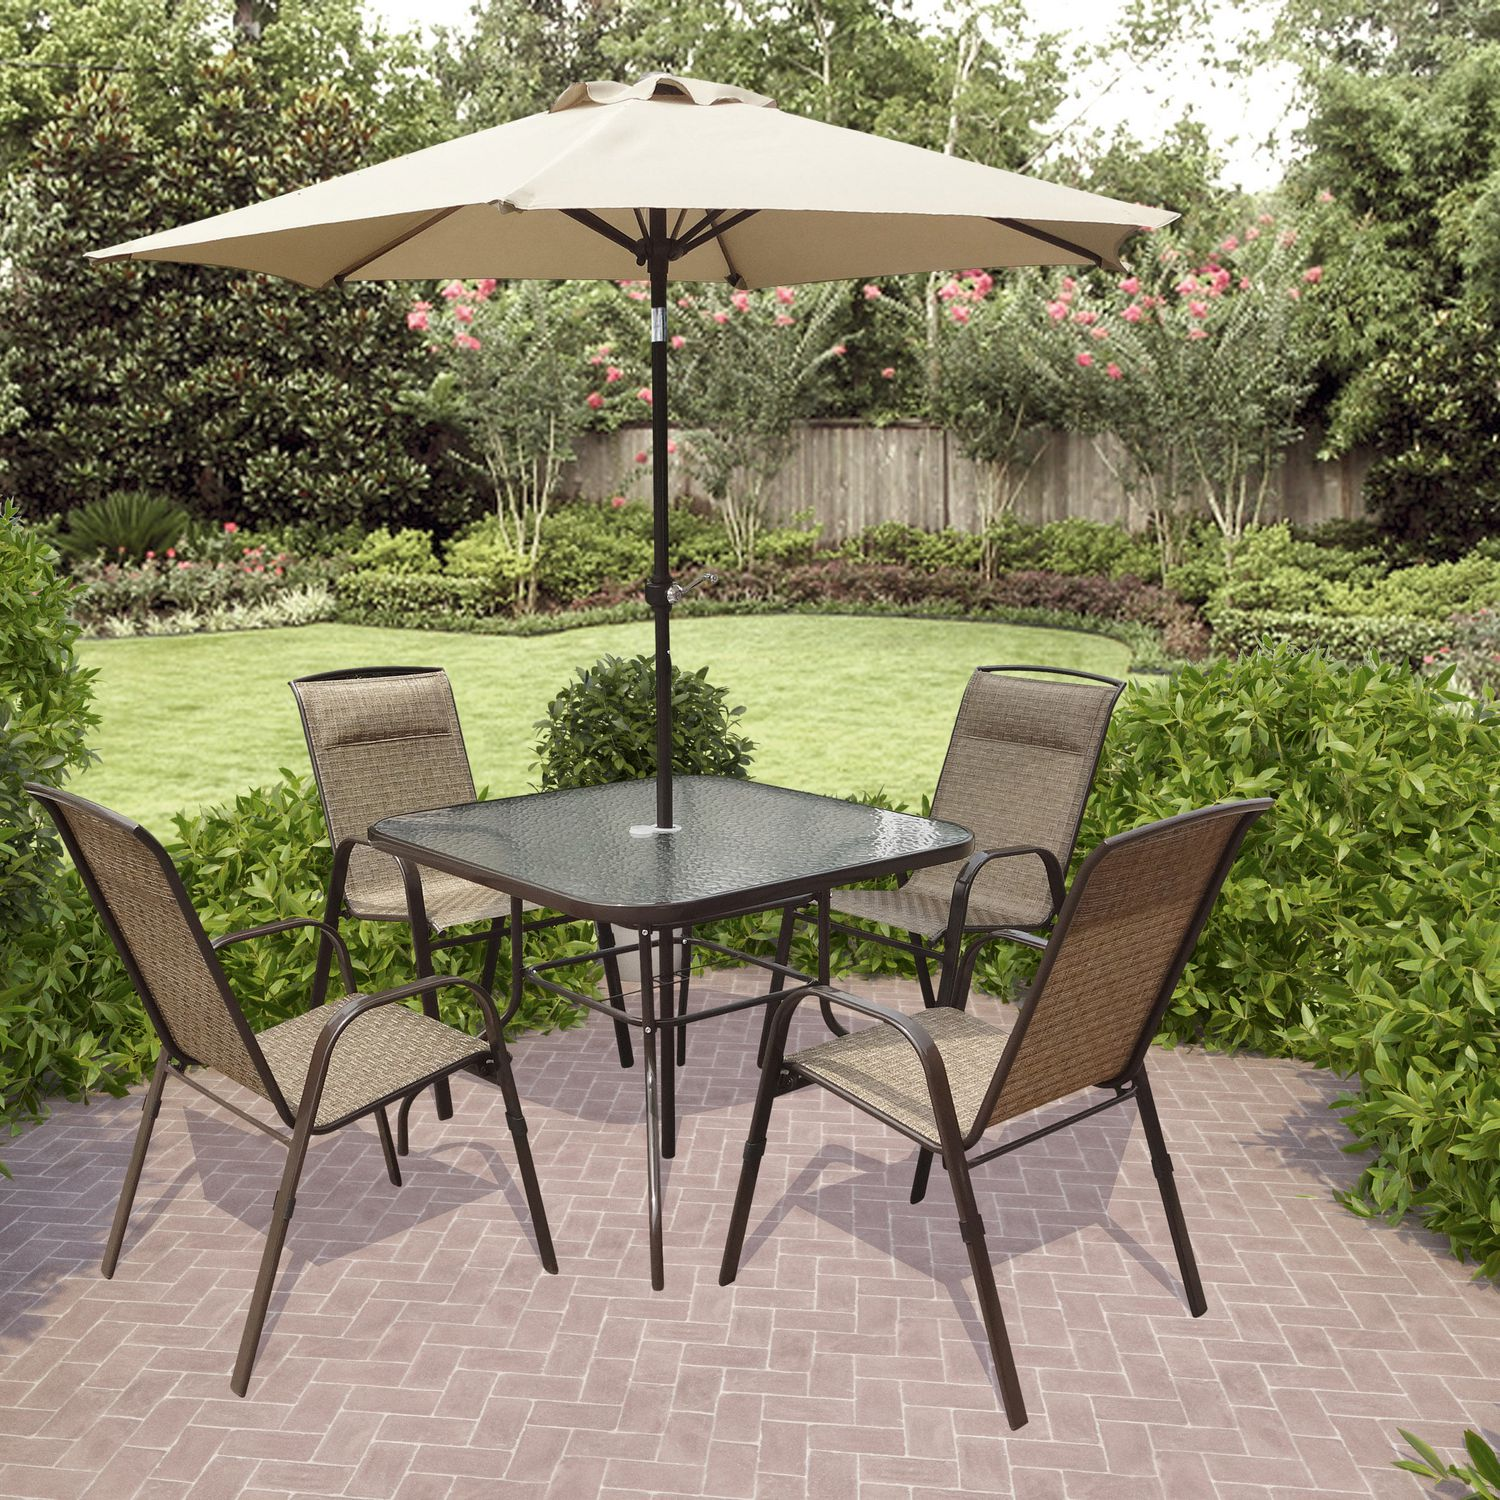 Beautiful CorLiving PZT 626 S Tilting Umbrella Patio Dining Set